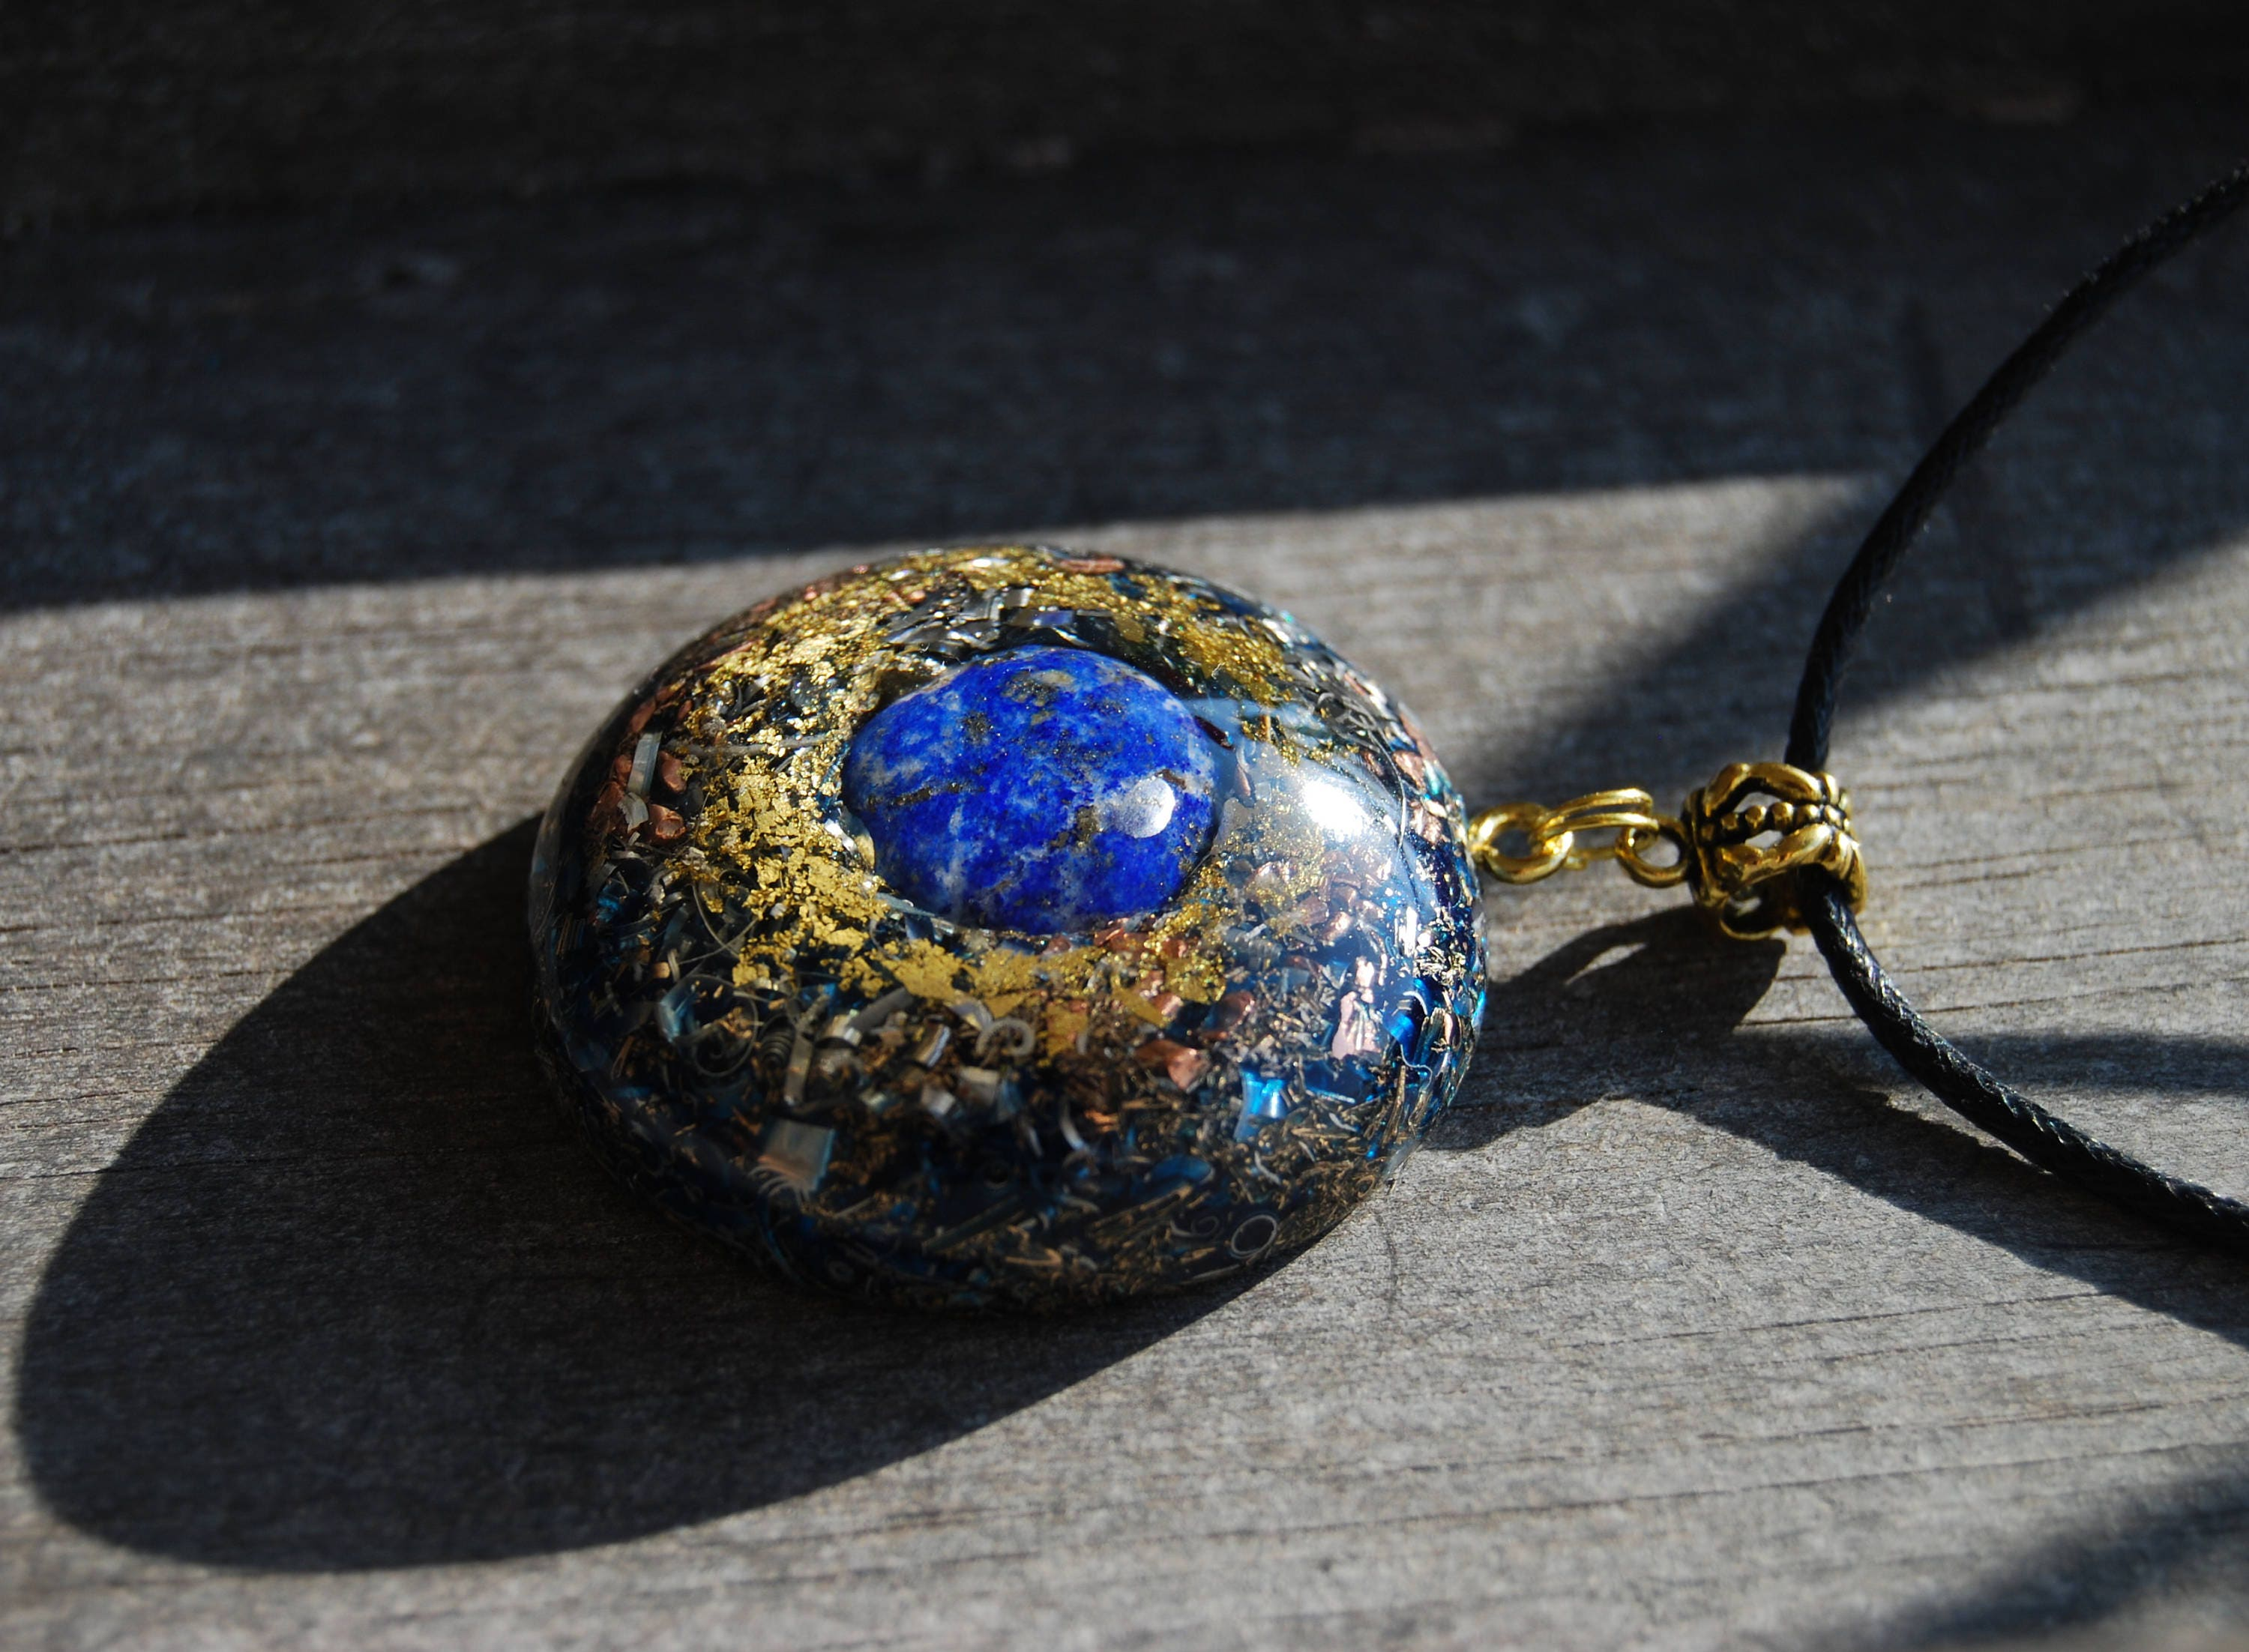 zb cubed gold kette goldplattiert lapislazuli noble silver necklace wuerfelkette lapis plated with lazuli gilded